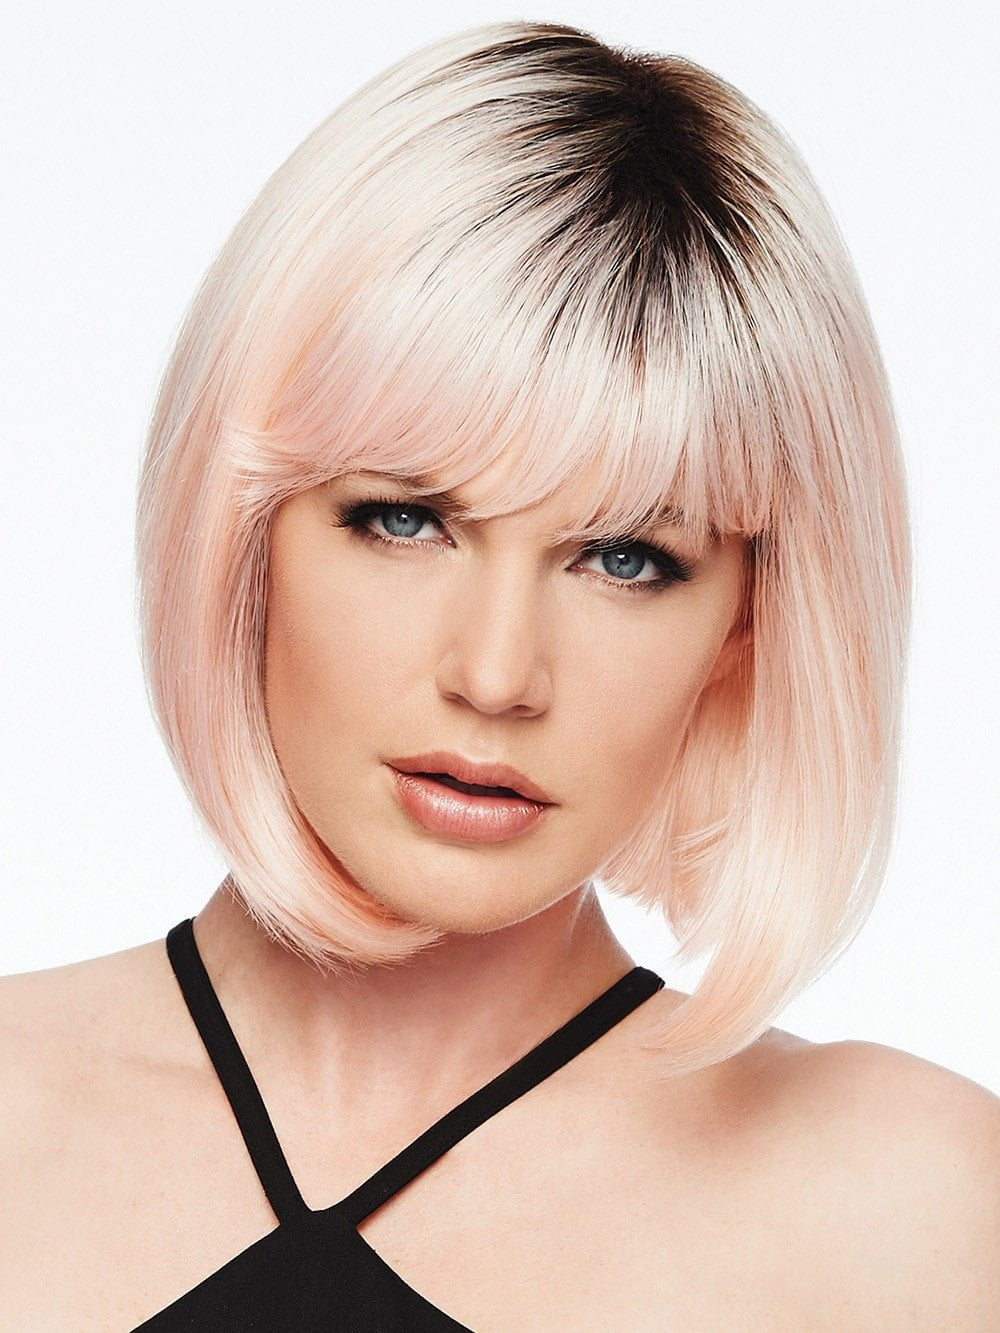 Peachy Keen By Hairdo Colored Wig Wigs Com The Wig